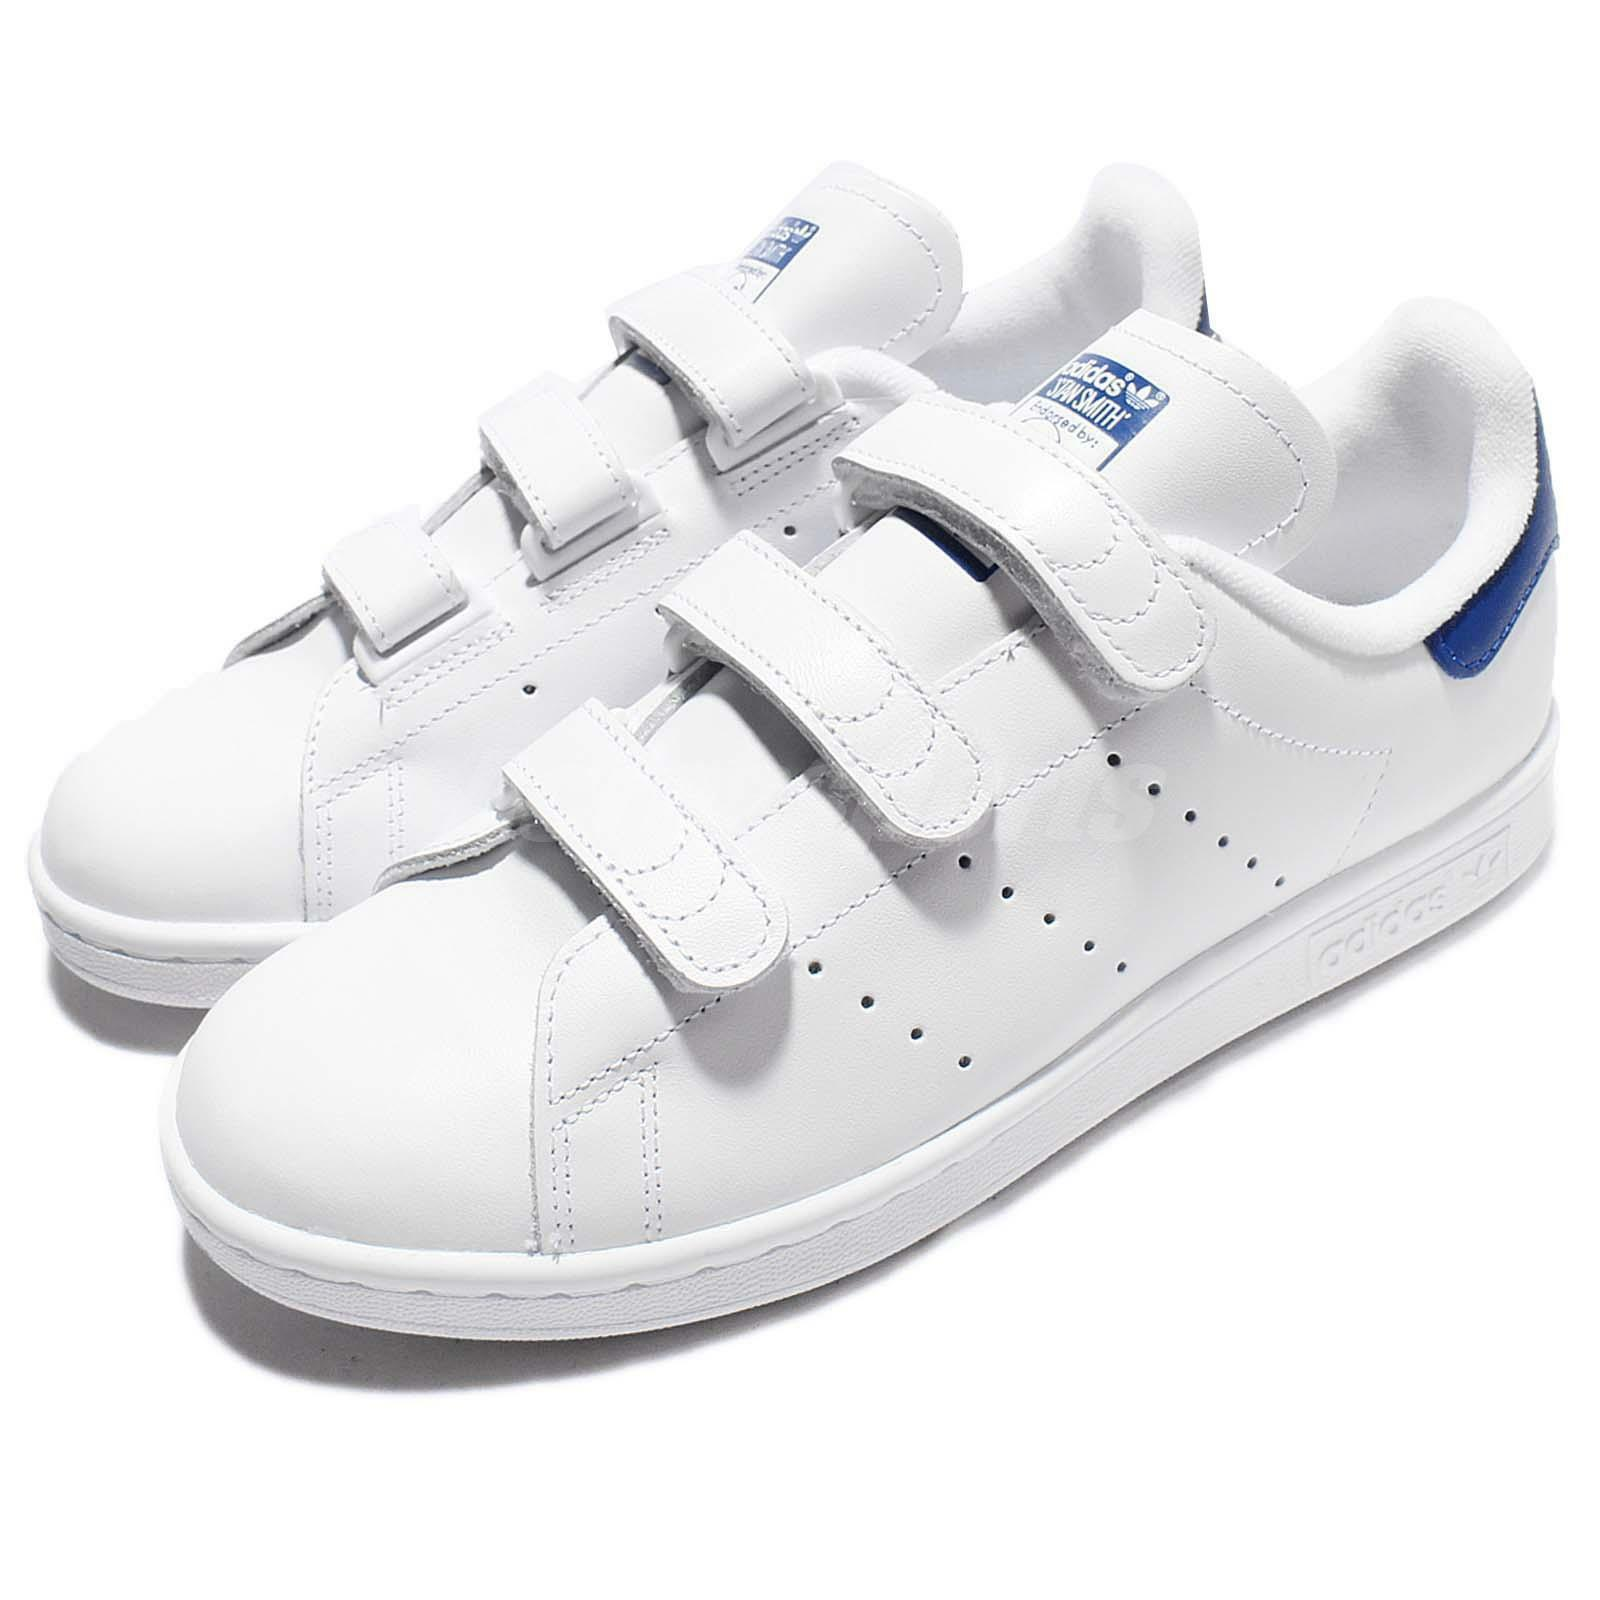 adidas Originals Stan Smith CF blanc Classic  bleu Leather Hommes Classic blanc Chaussures S80042 486068